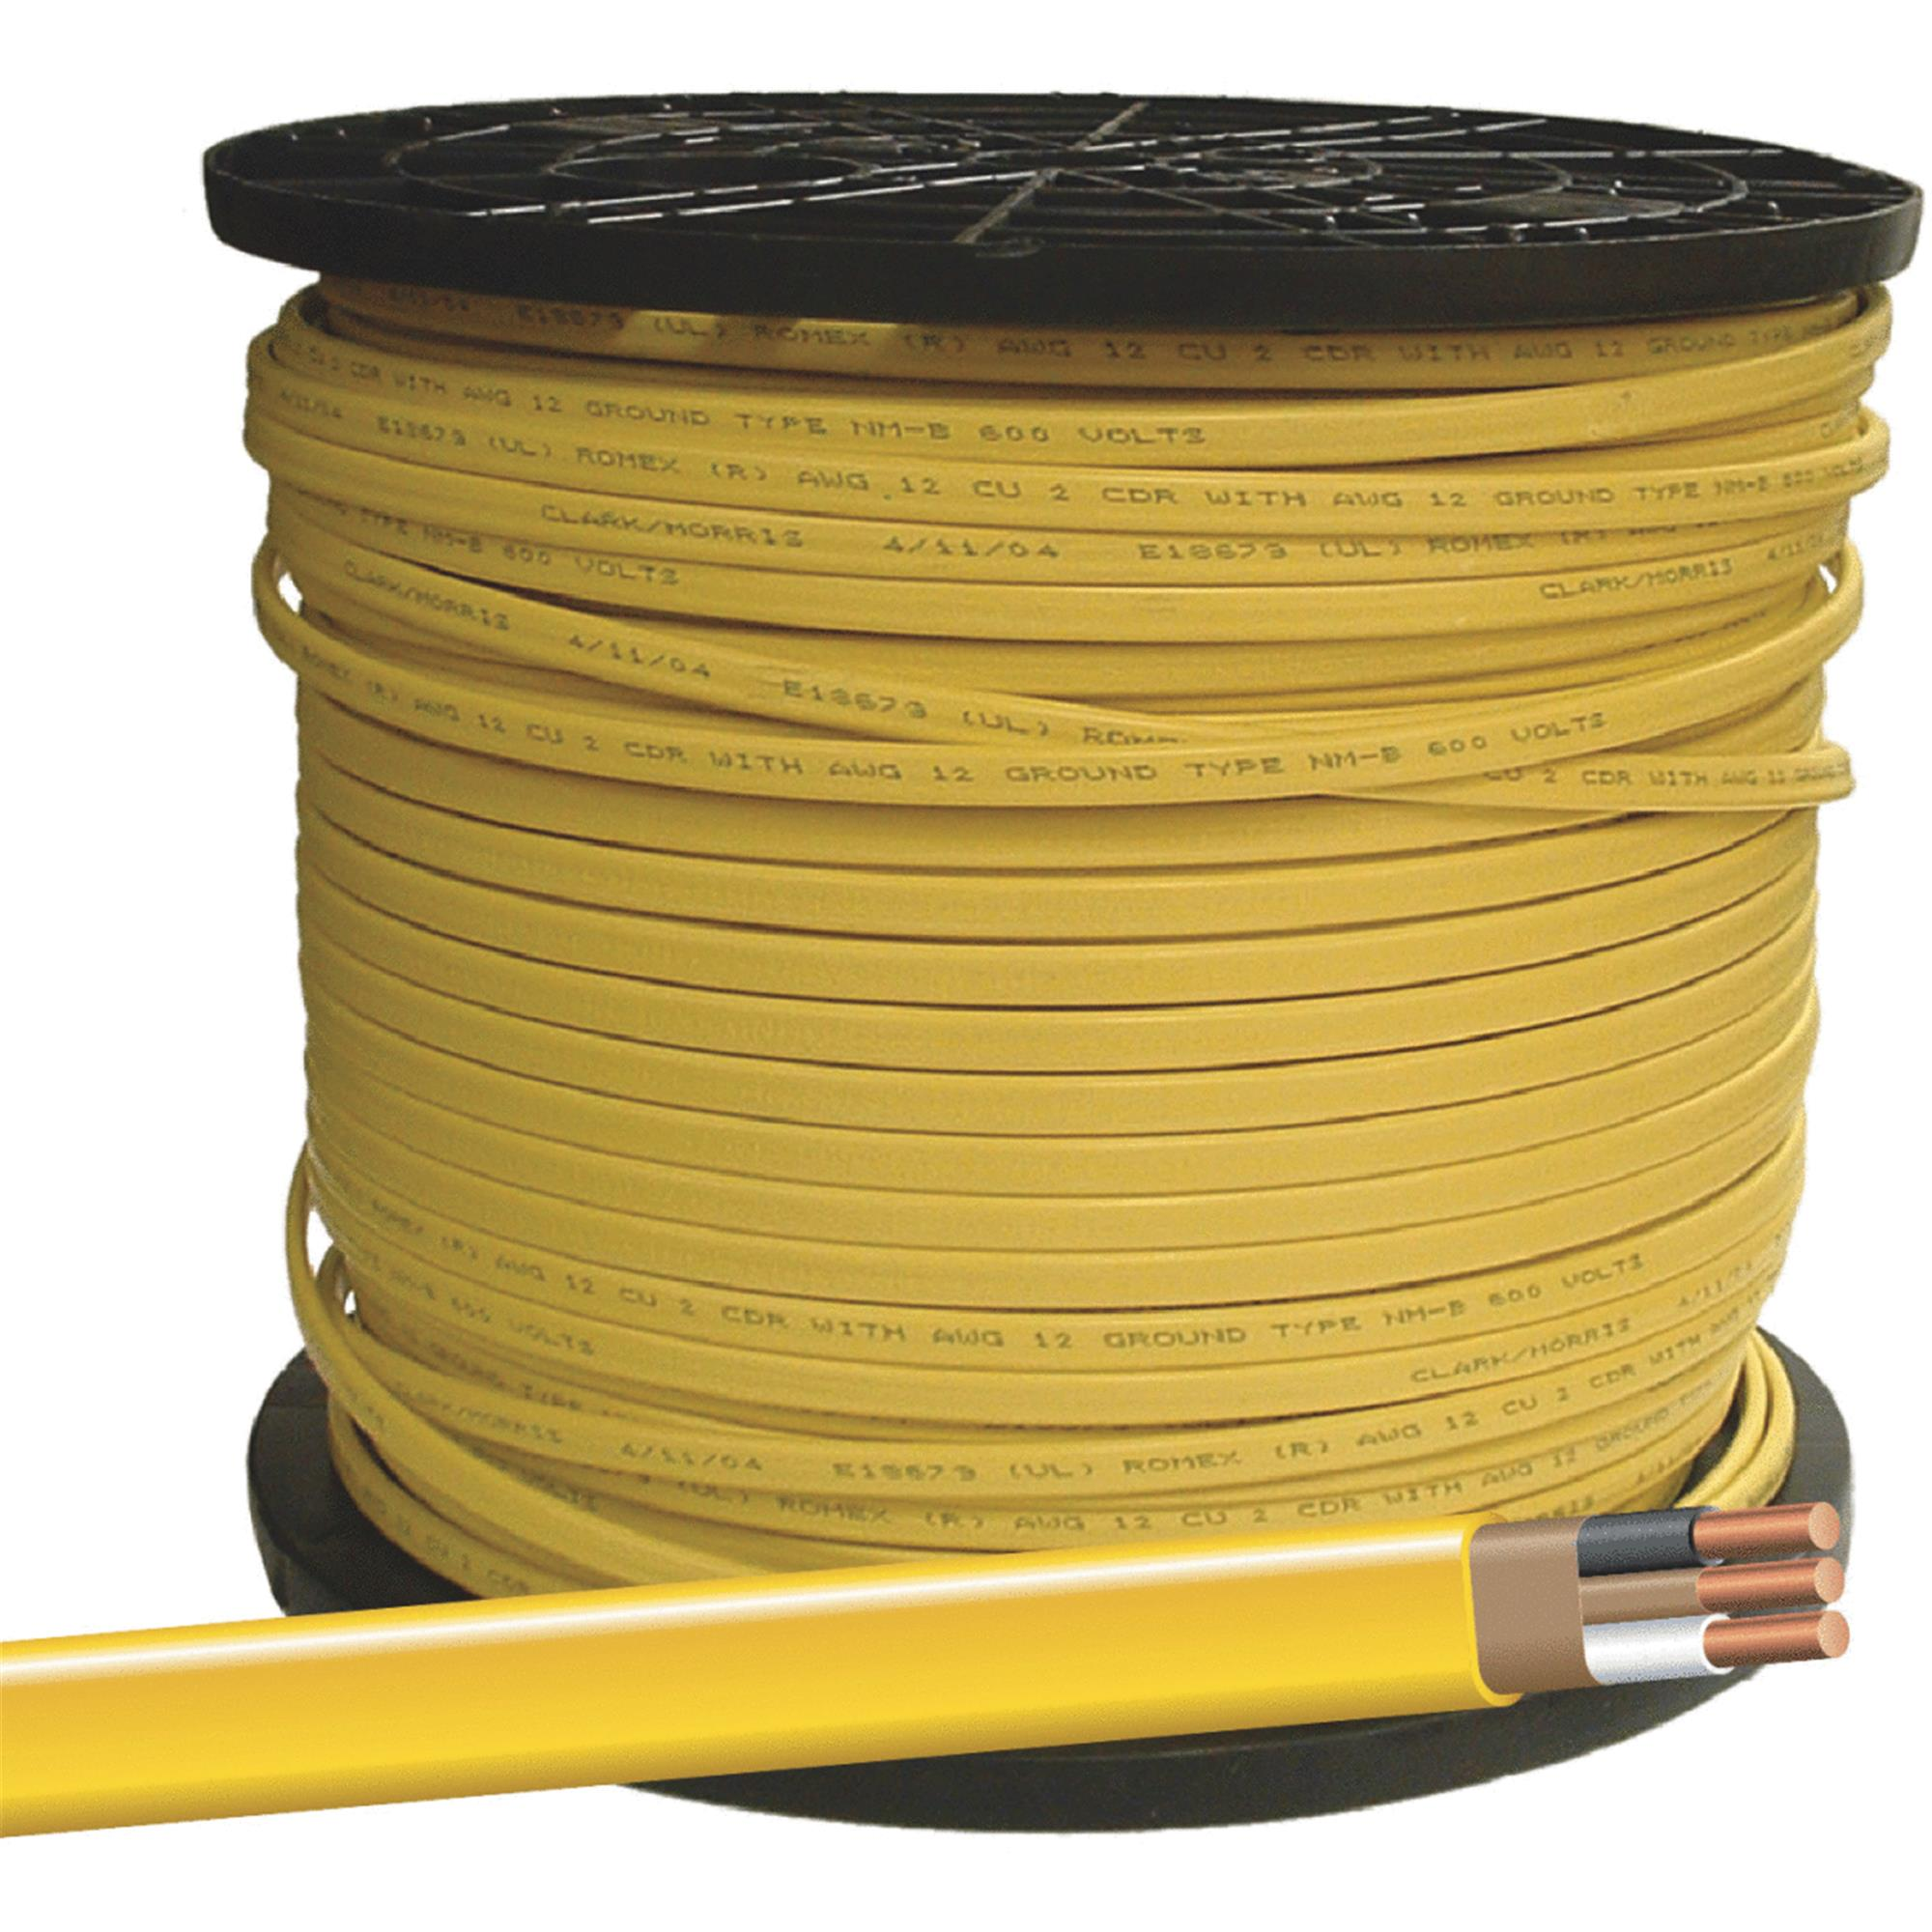 Southwire Romex 12-2 NMW/G Wire